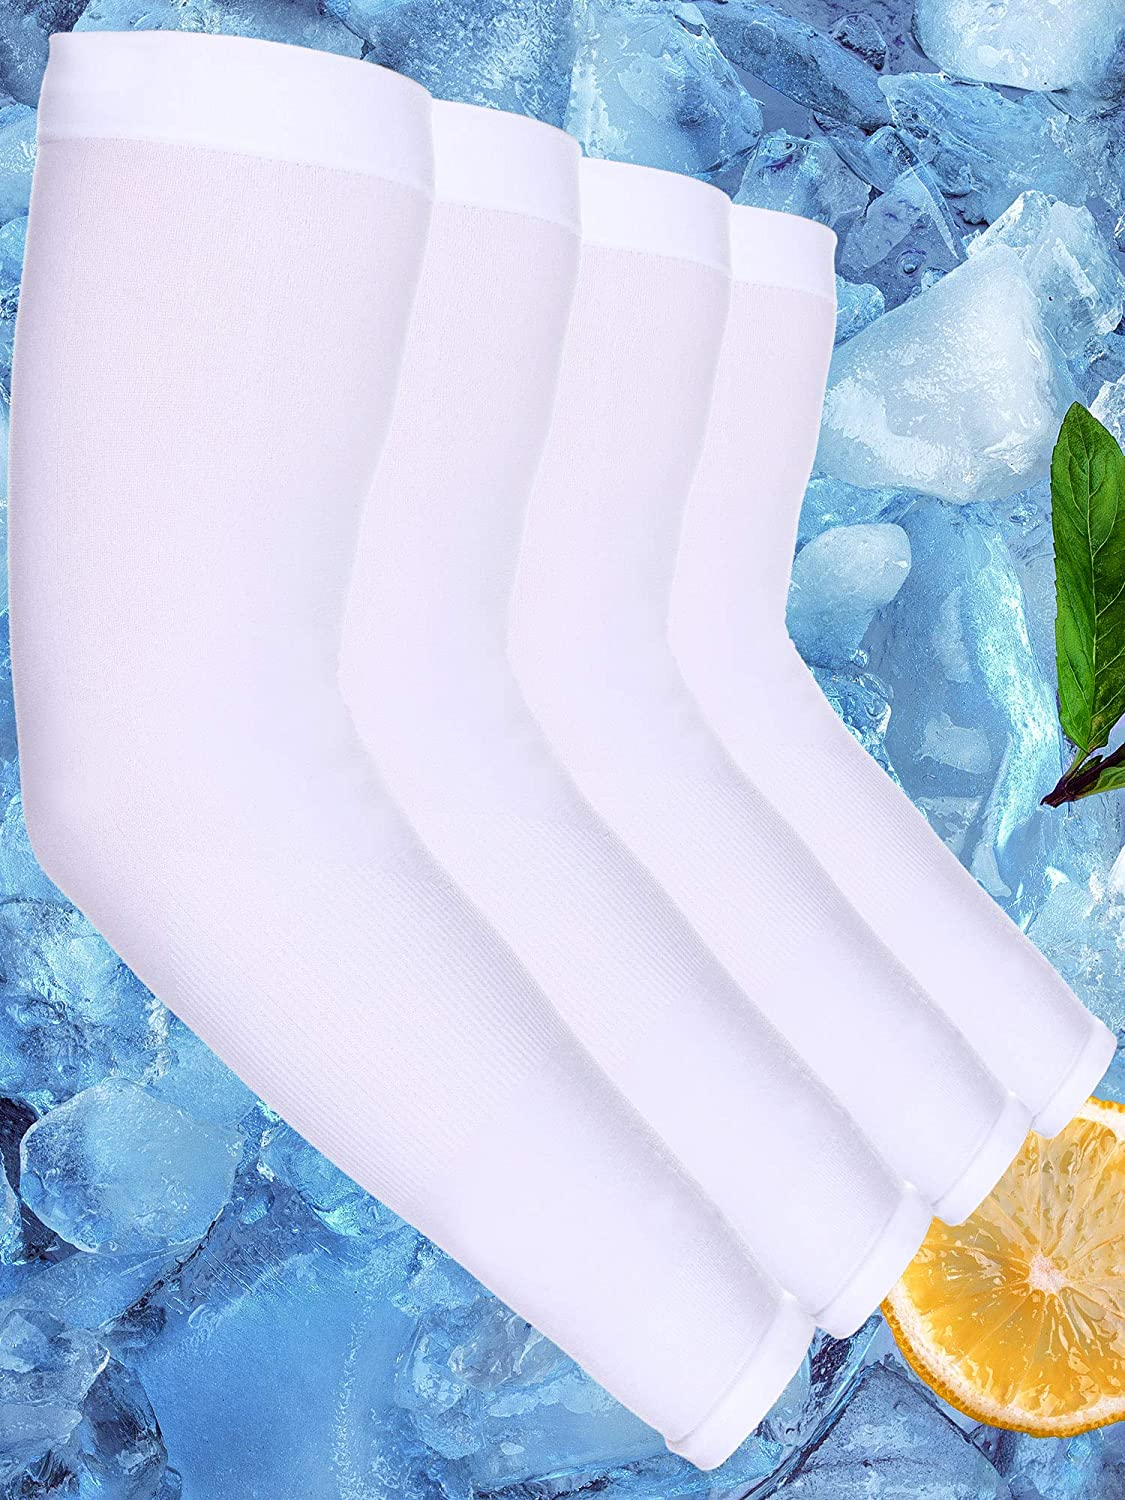 White, Style A Boao 8 Pairs Unisex Cooling Arm Sleeves Ice Silk UV Sun Protective Glove 2 Styles